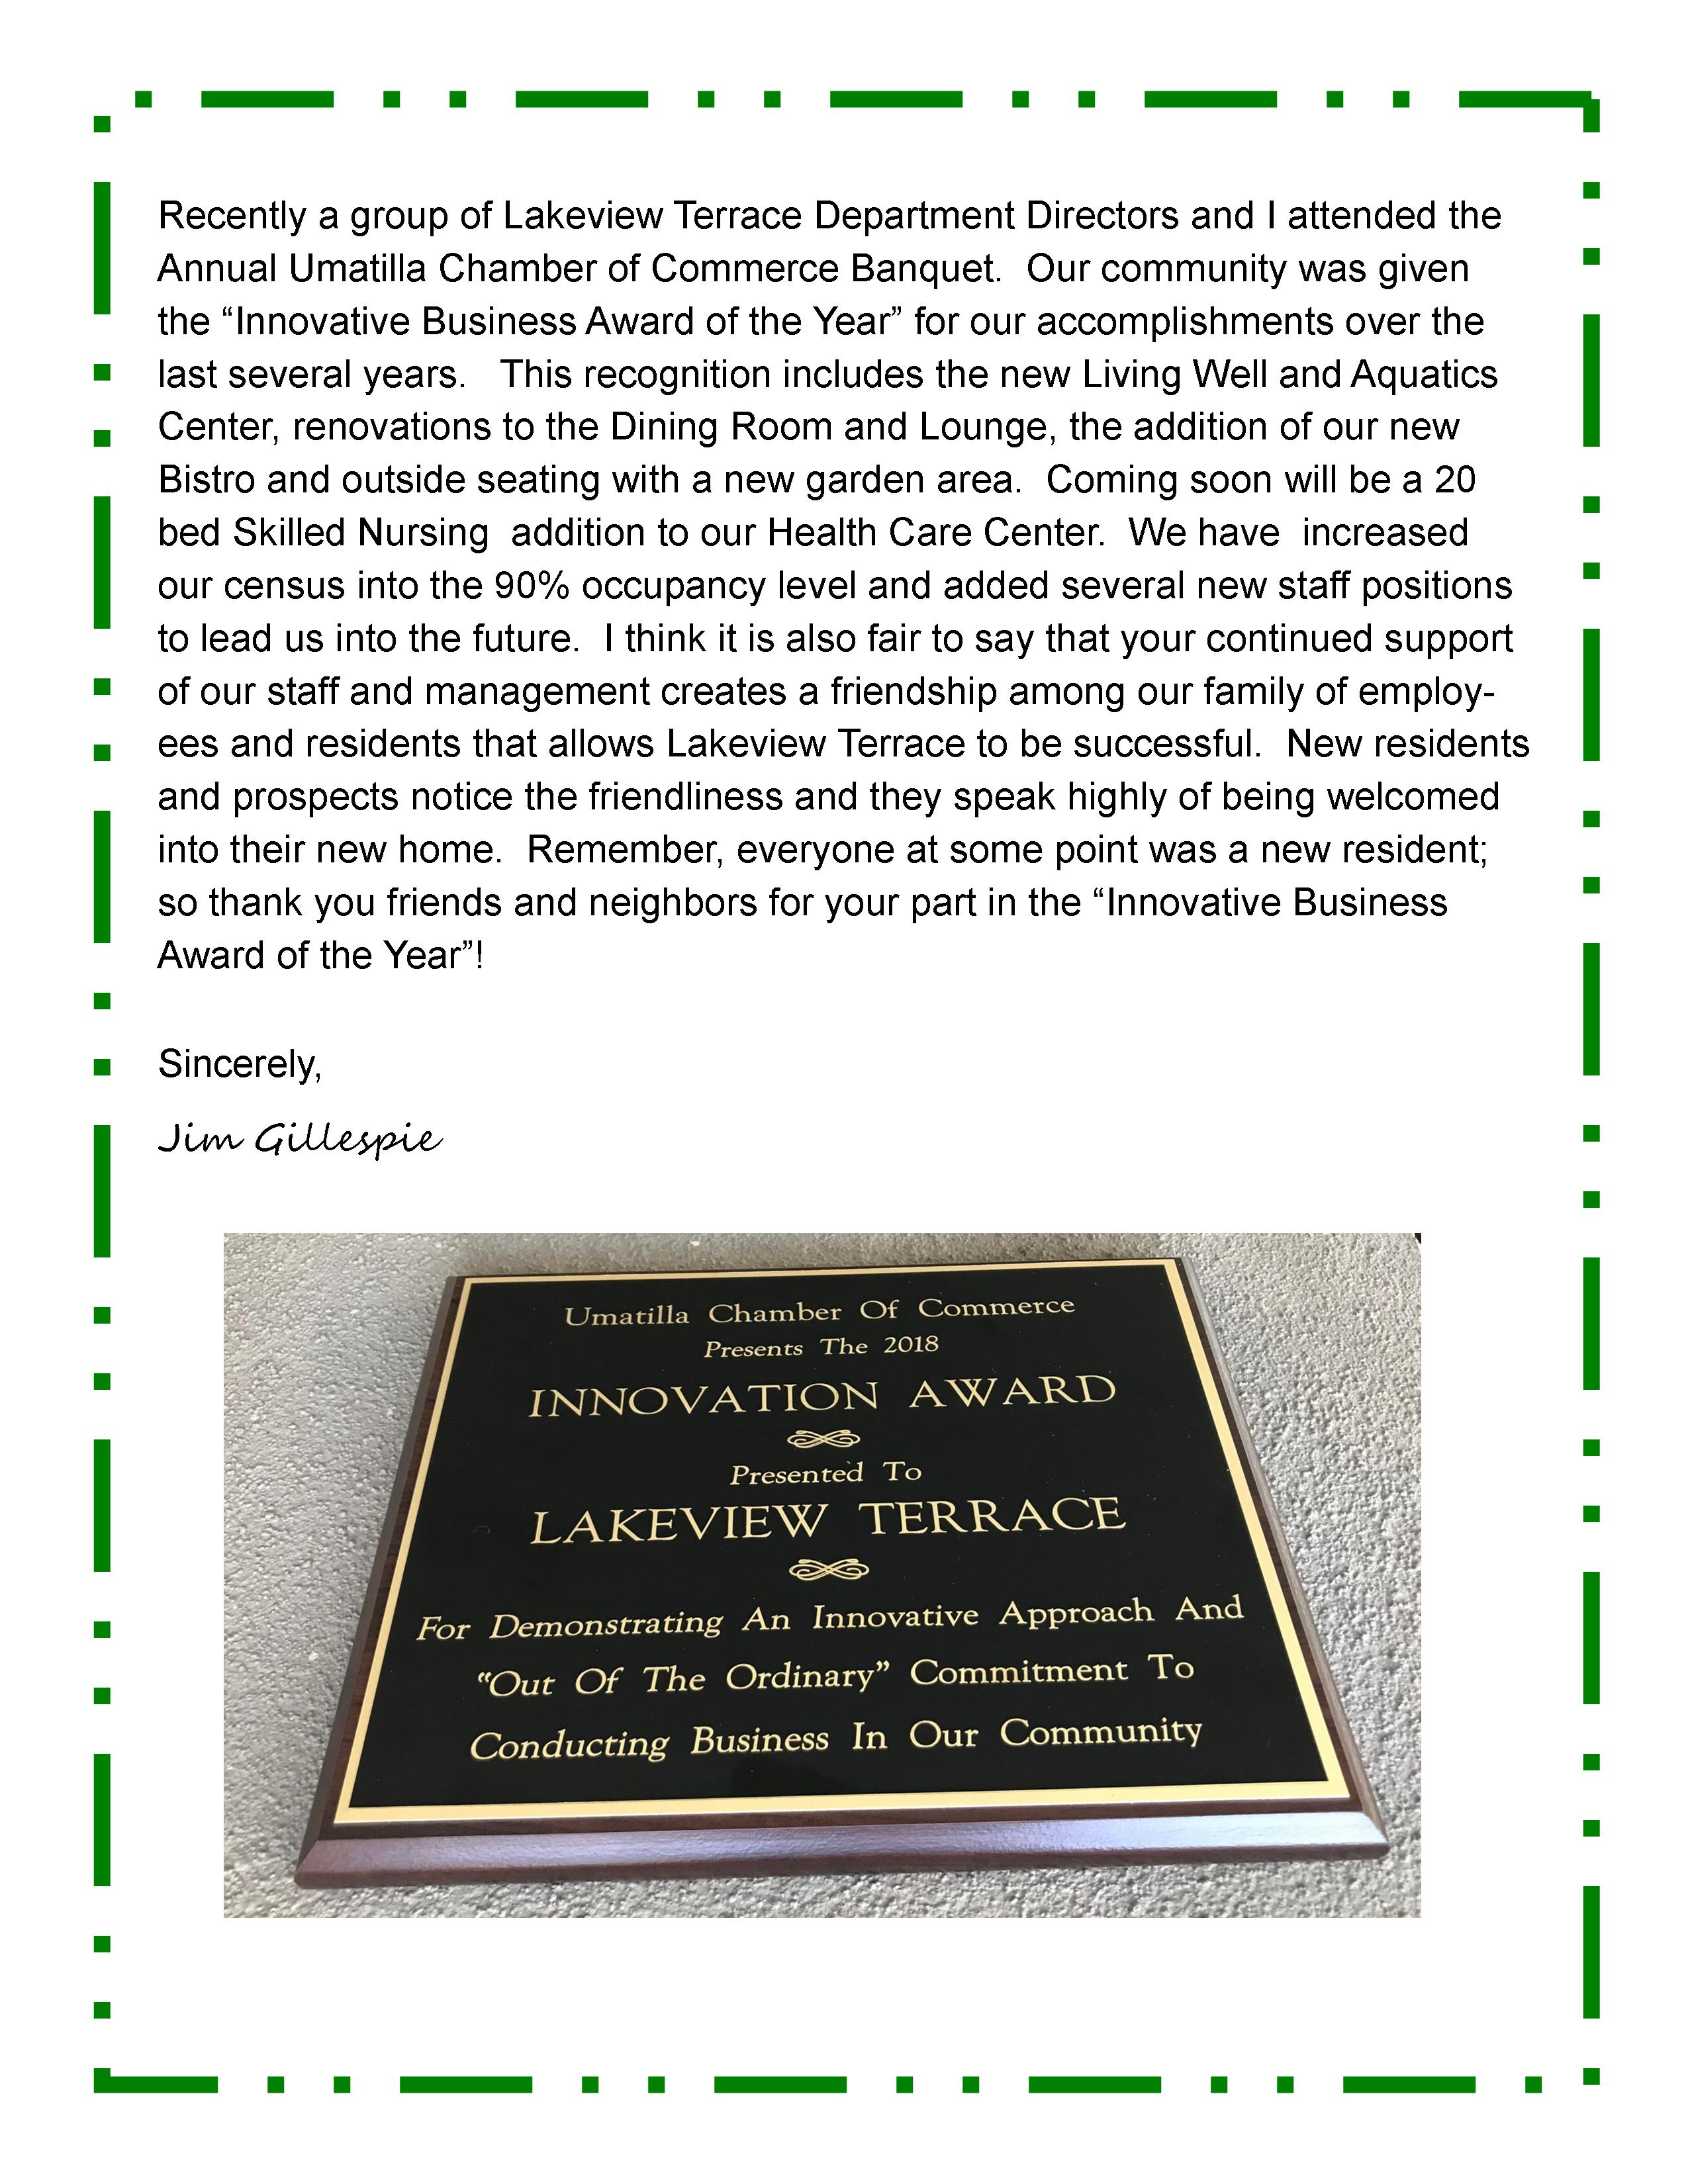 Lakeview Terrace Innovation Award